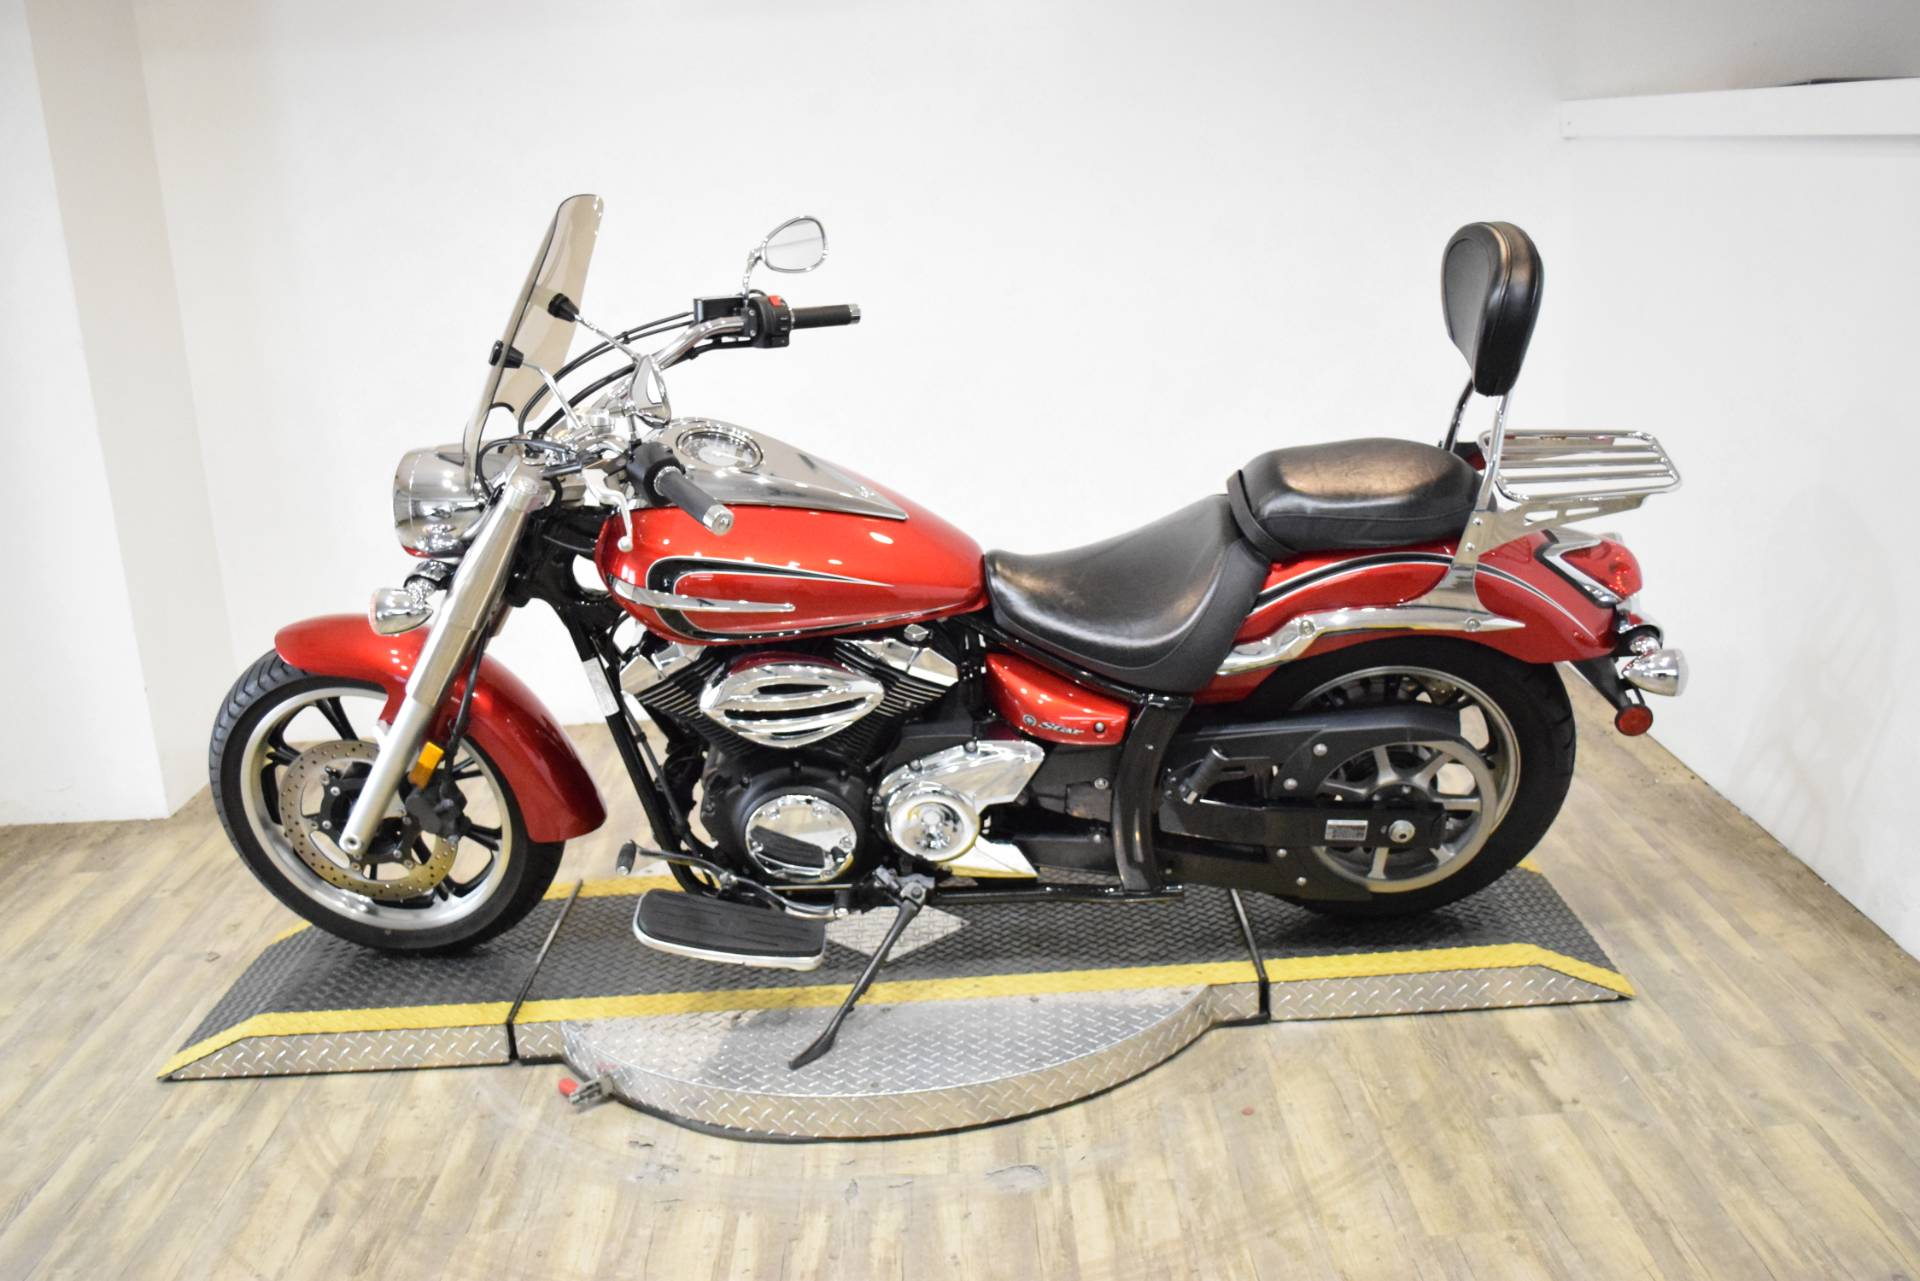 2012 Yamaha V Star 950 in Wauconda, Illinois - Photo 15